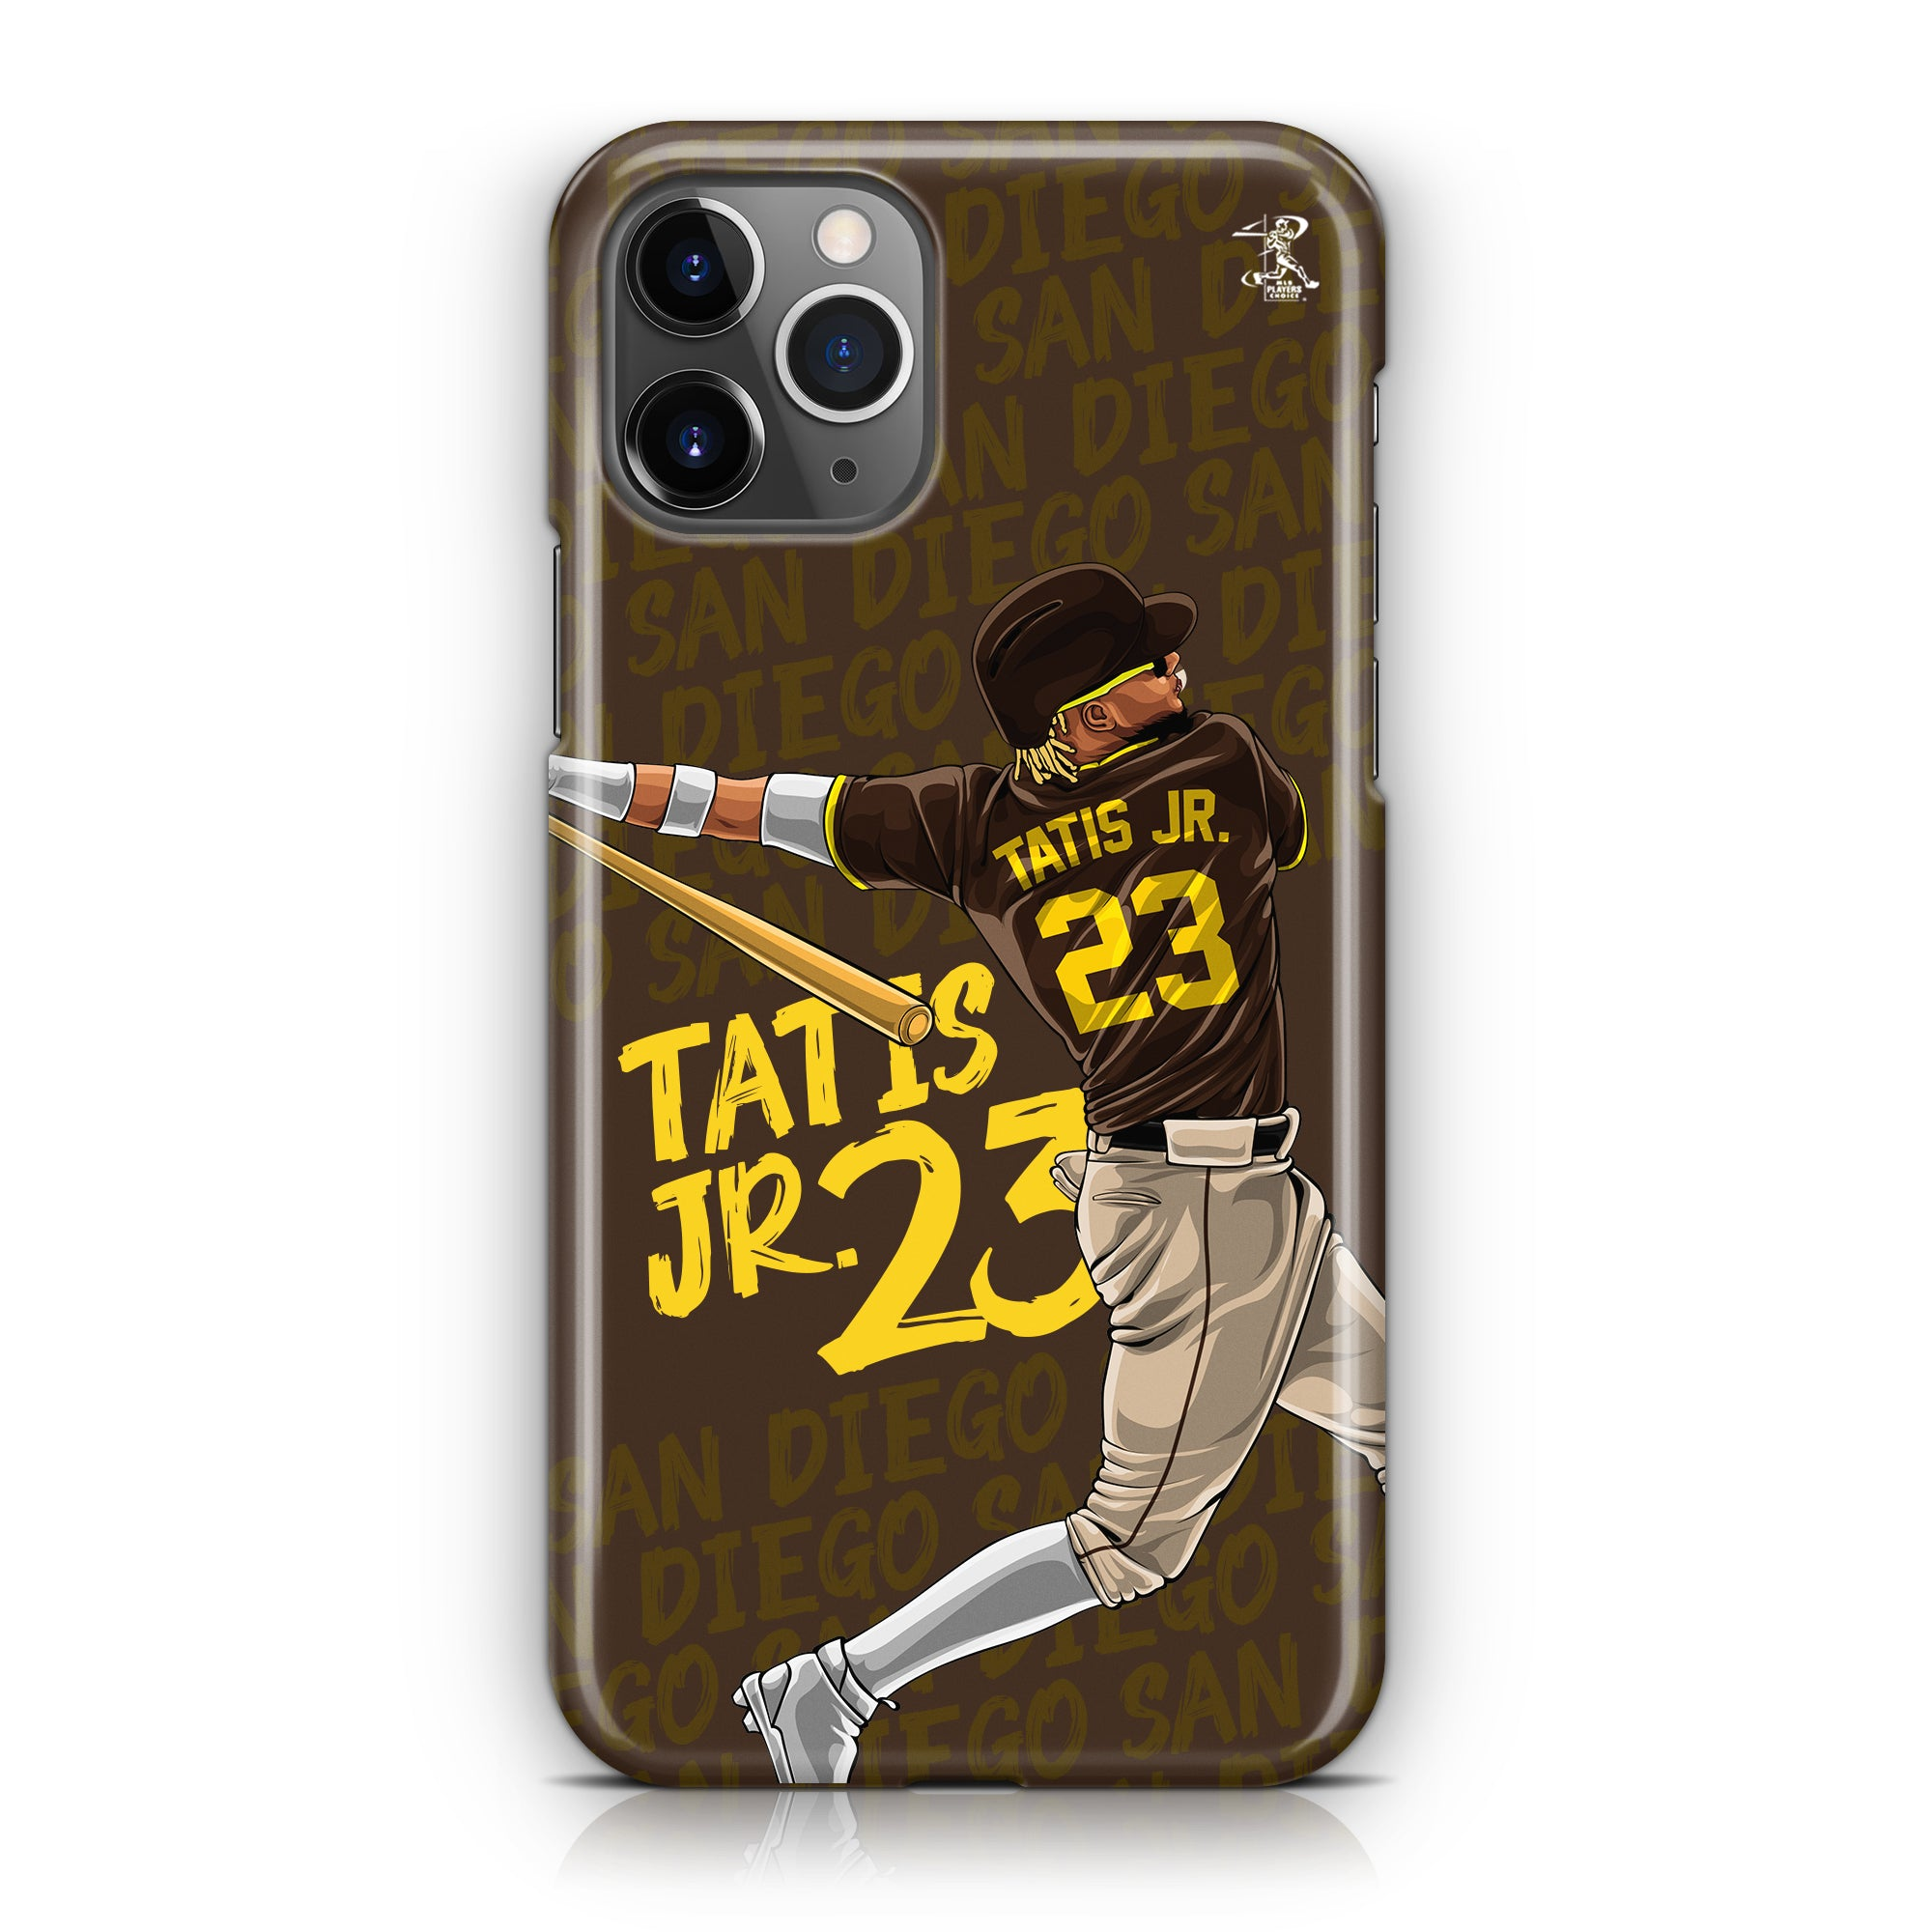 Tatis Jr. Star Series 2.0 Case